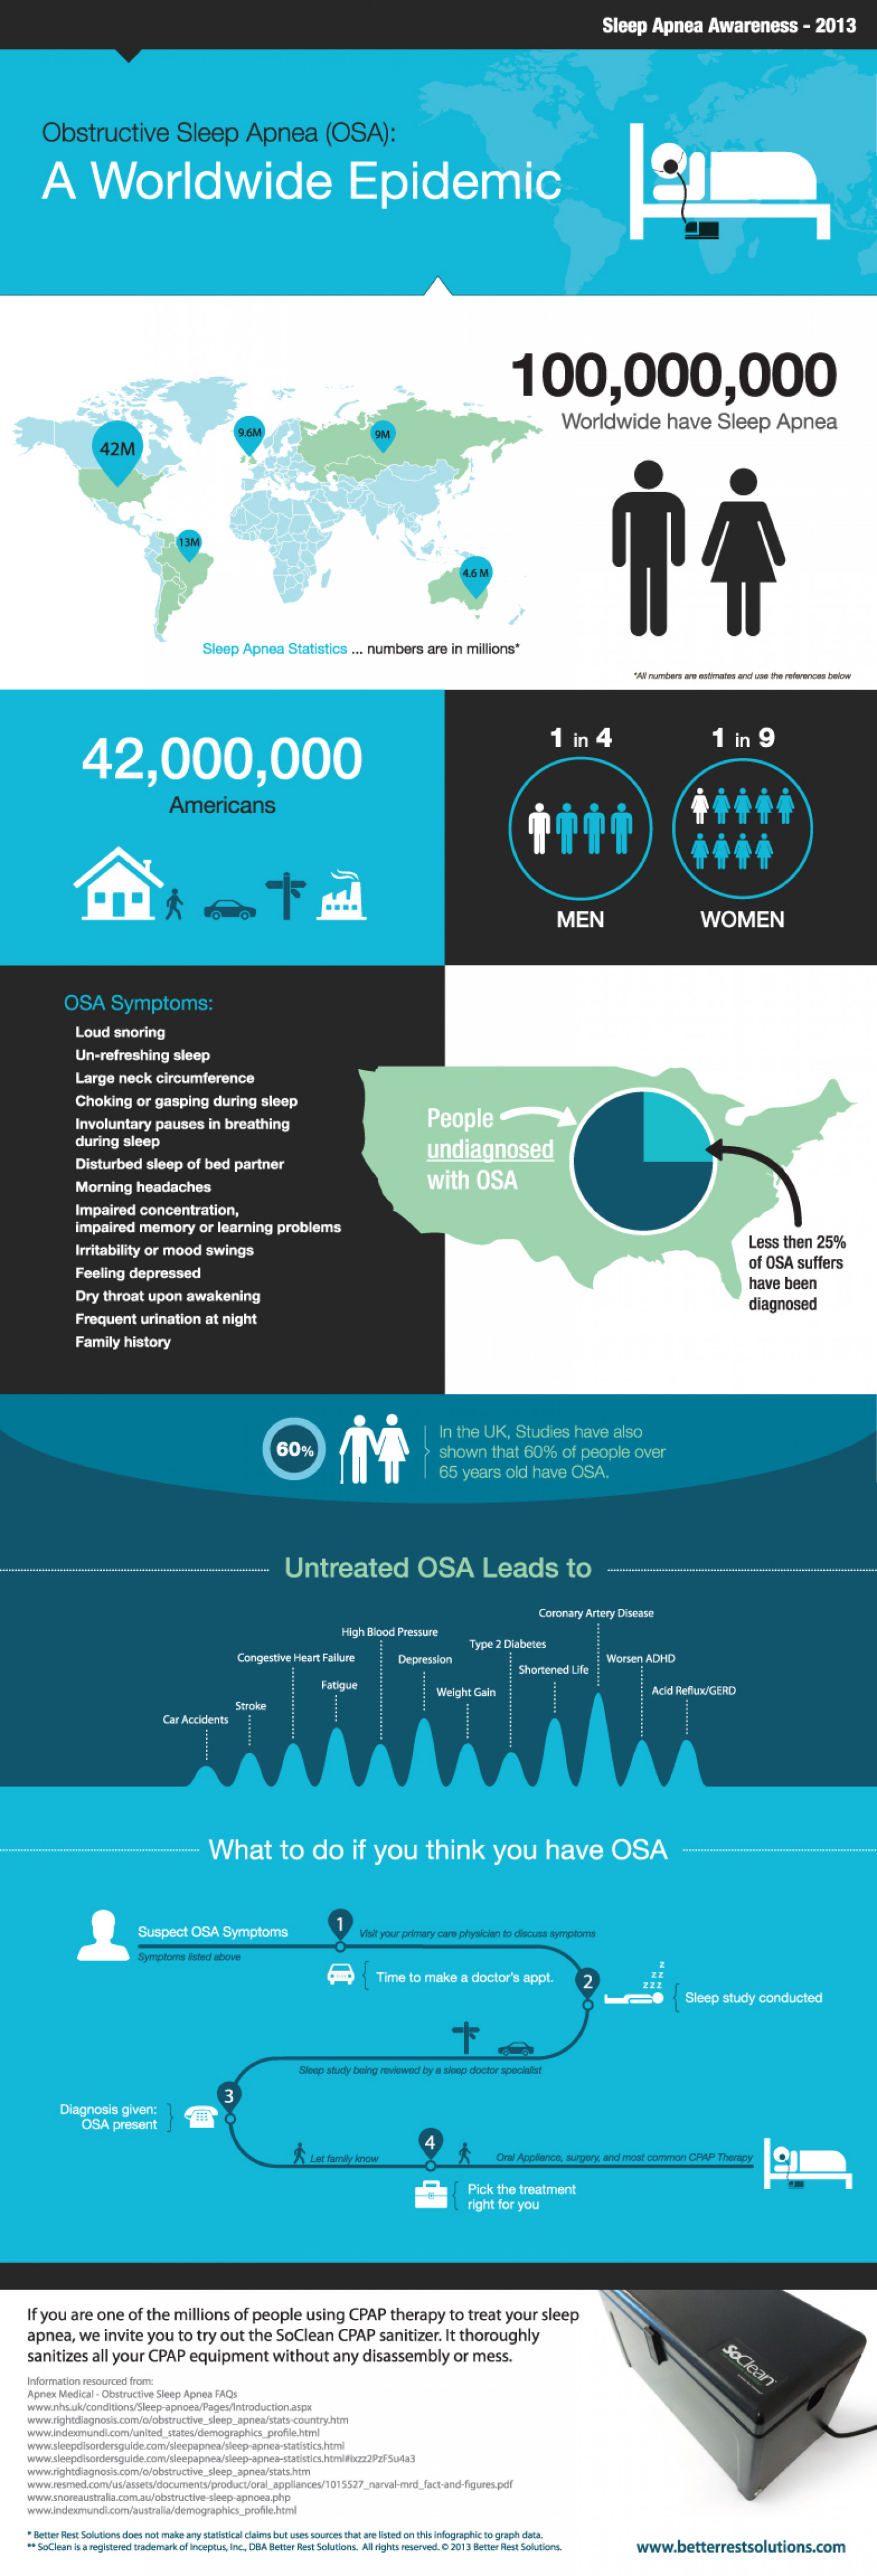 Obstructive Sleep Apnea - A Worldwide Epidemic Infographic